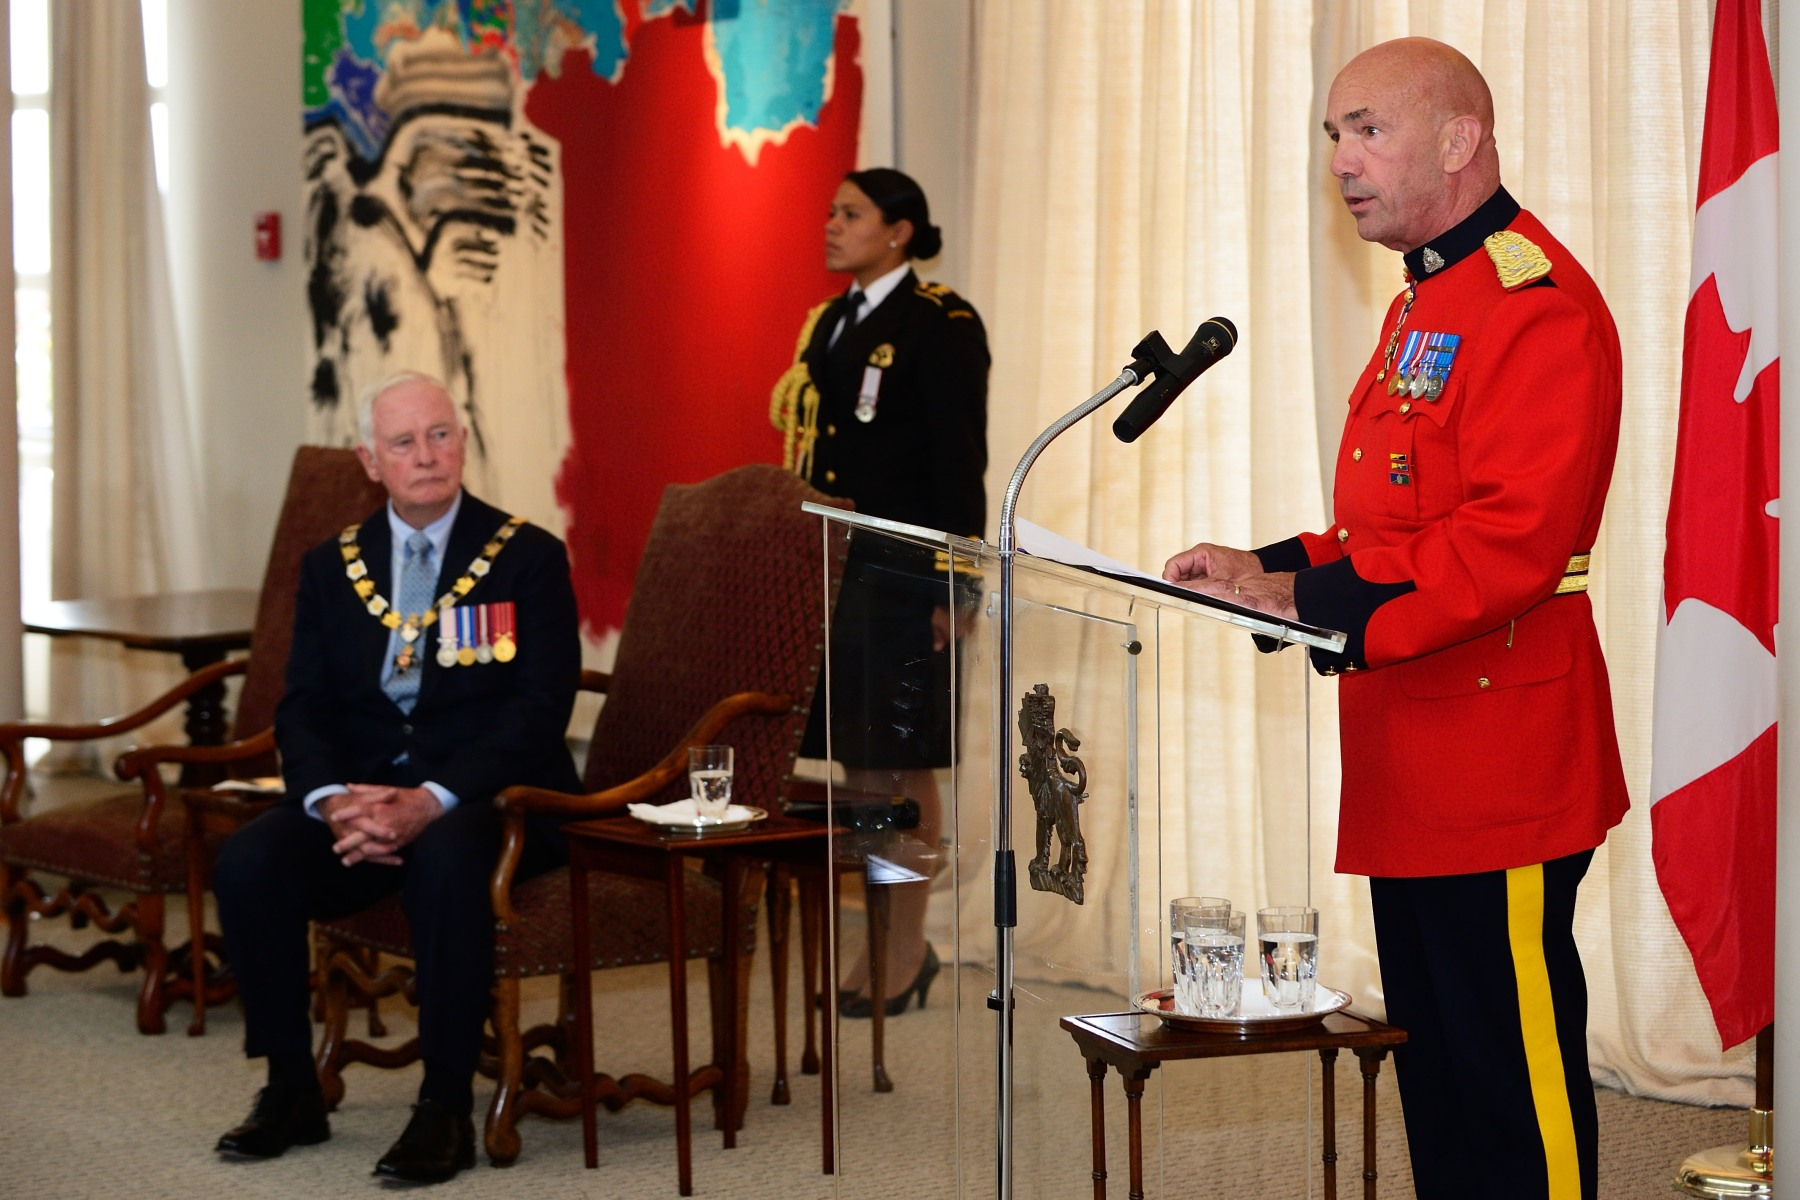 RCMP Commissioner Bob Paulson spoke during the afternoon ceremony.